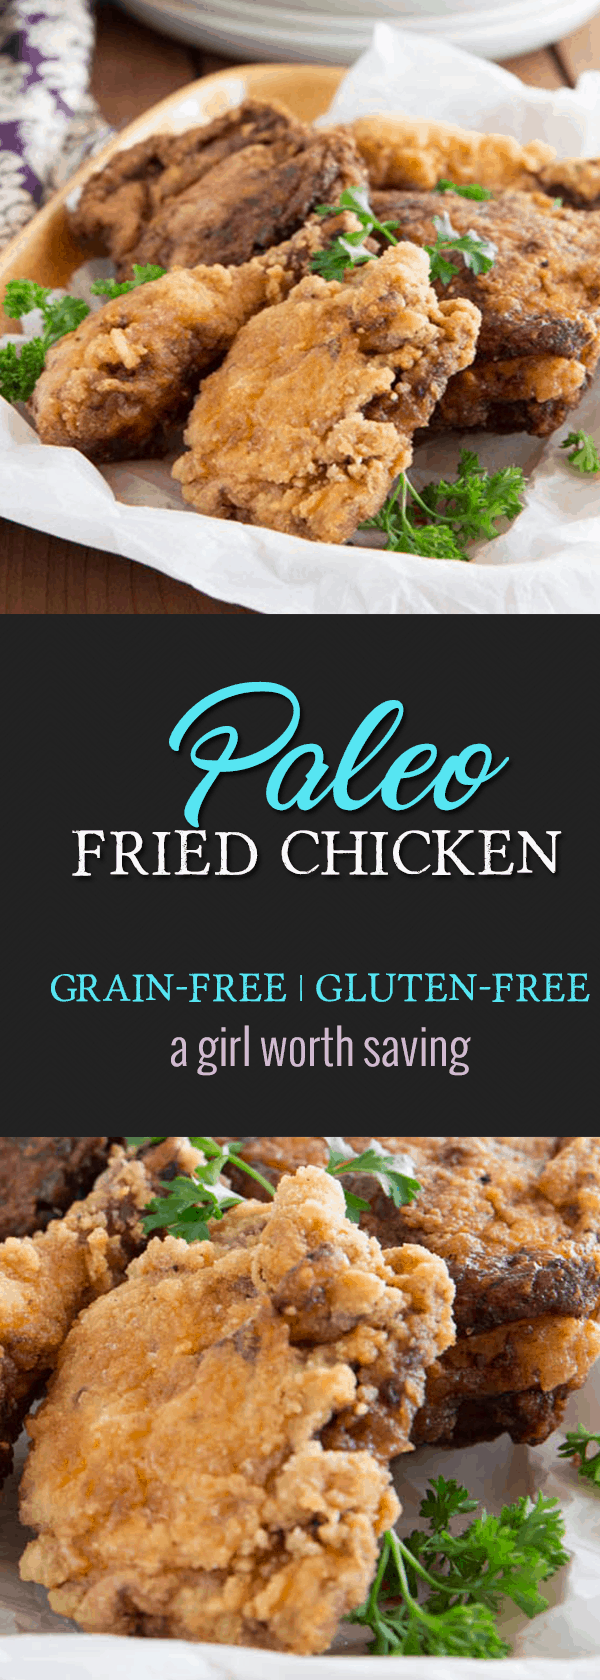 Marinated in tomato juice and then breaded with a tapioca flour mix, this Crispy Paleo Fried Chicken is Finger Licking Good! It's juicy and tender on the inside and crispy on the outside.